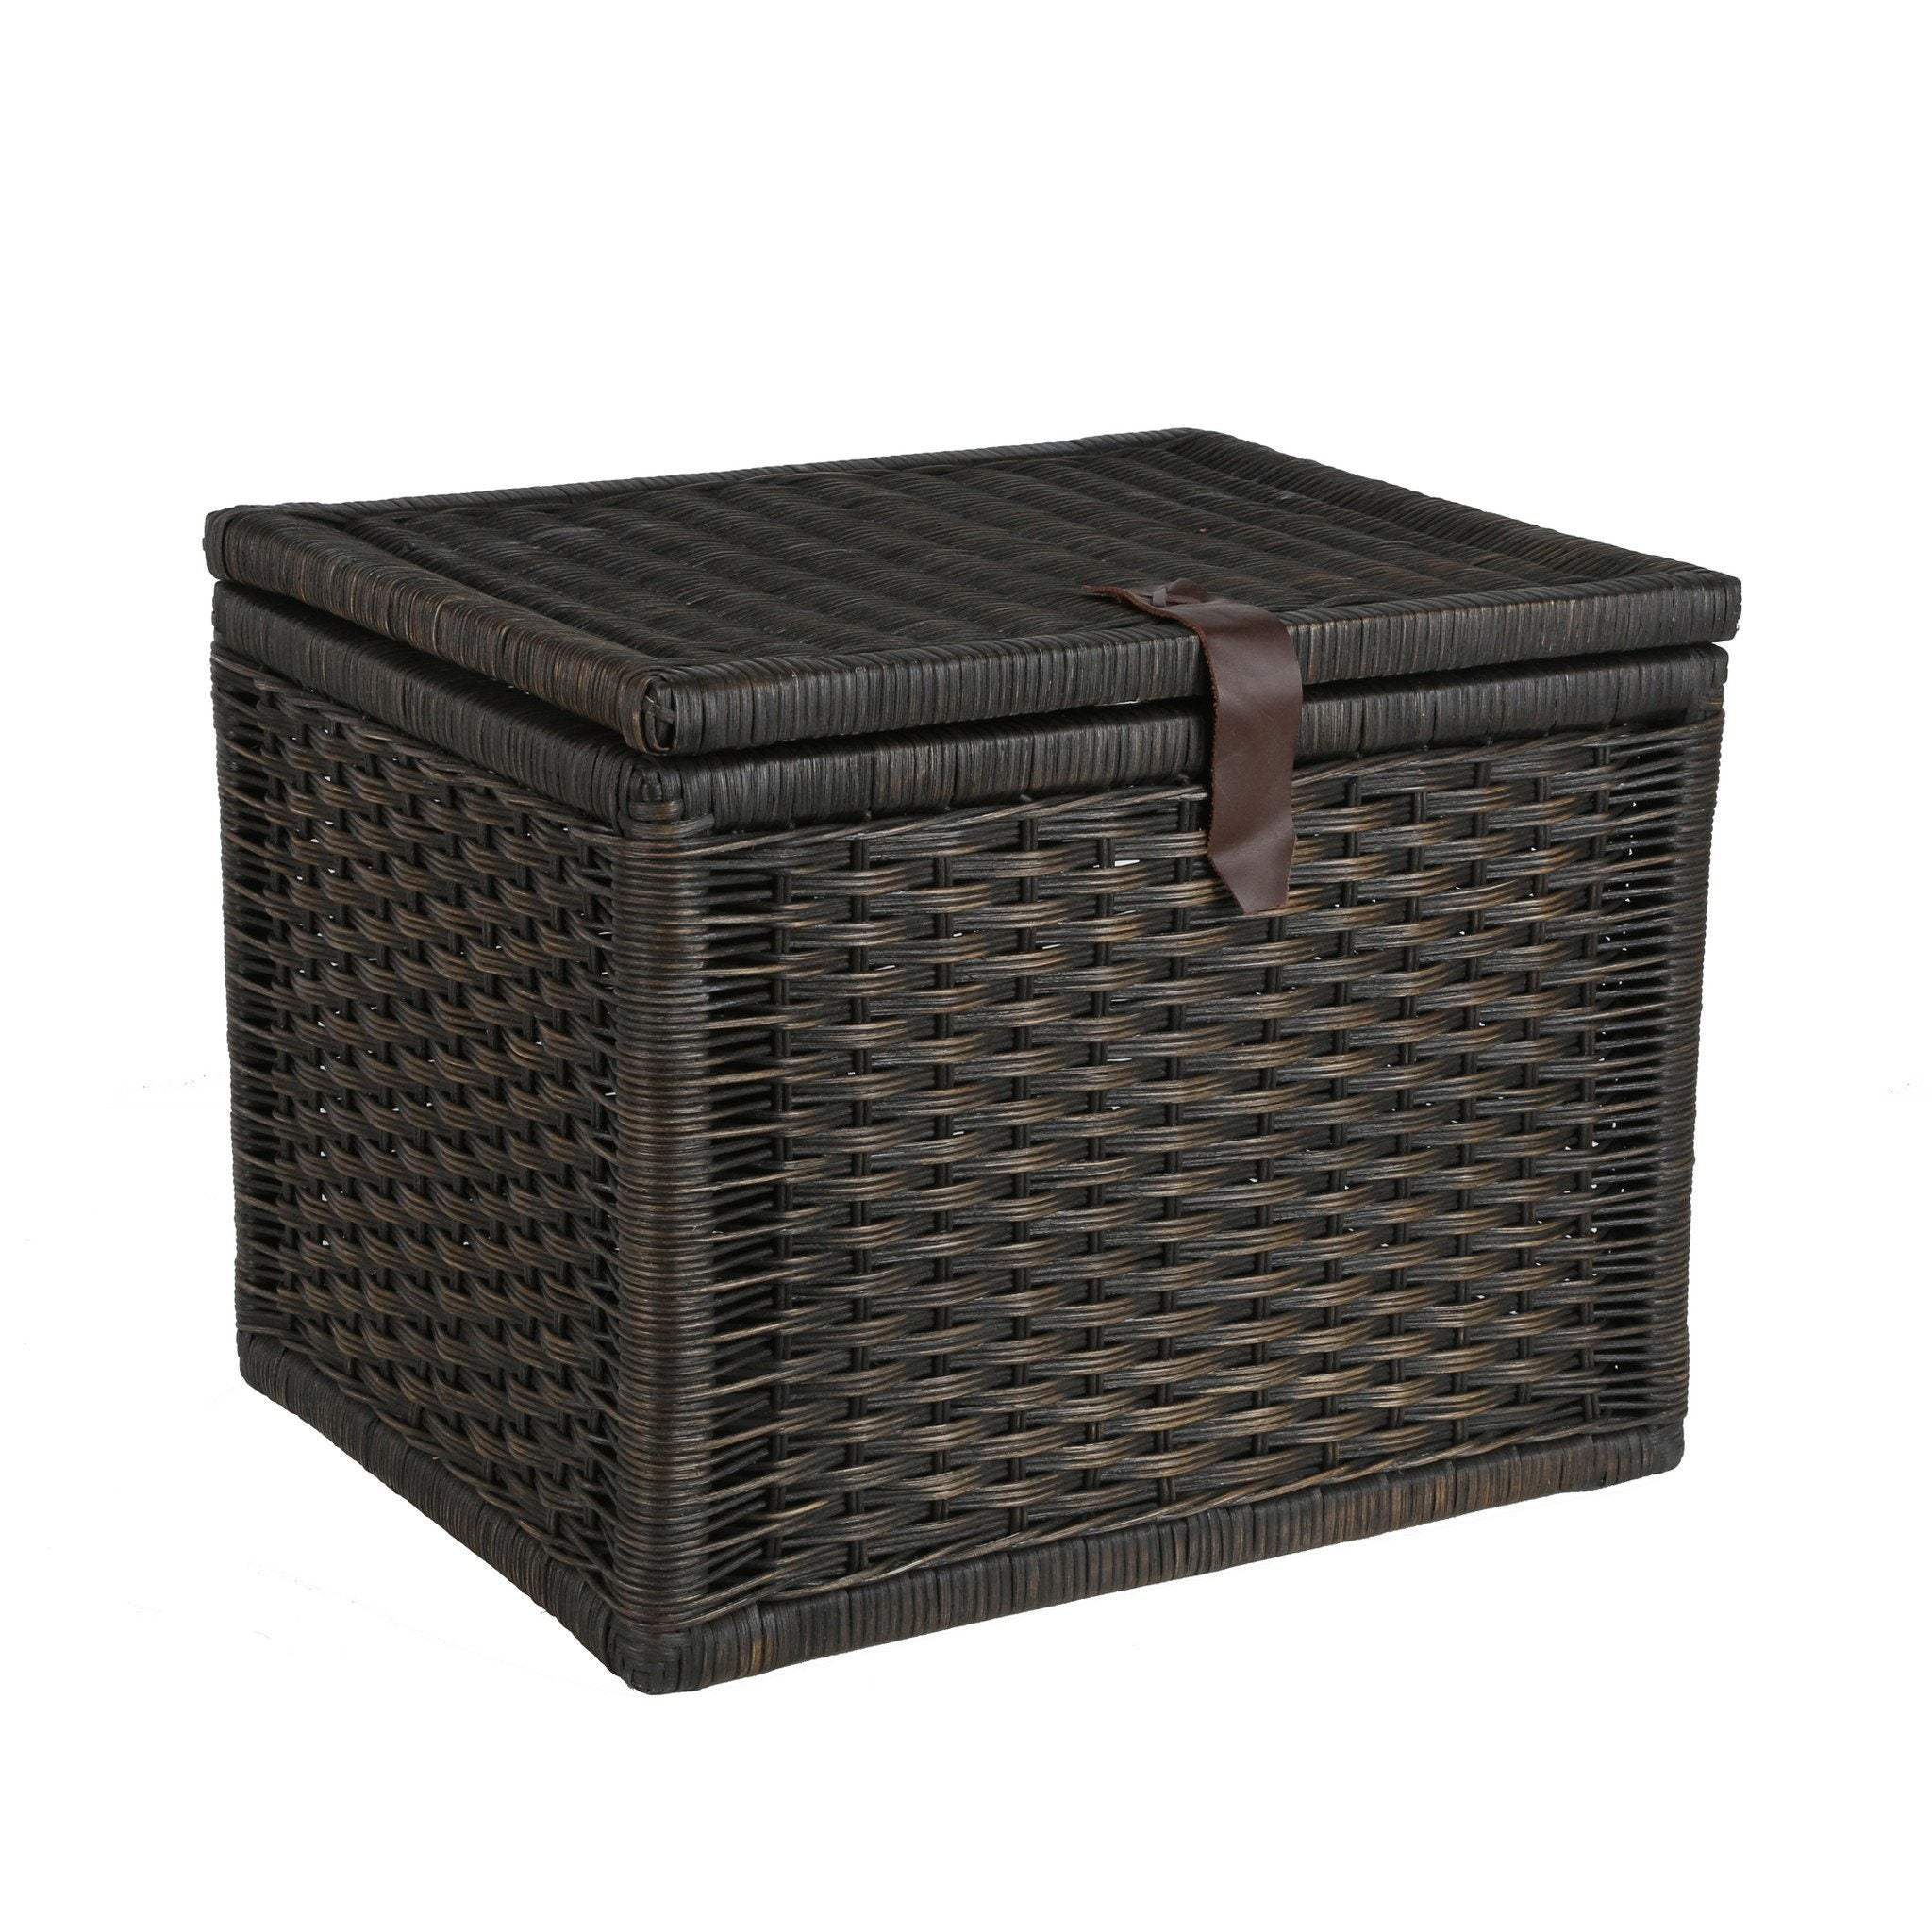 ... Small Wicker Storage Trunk in Antique Walnut Brown from The Basket Lady